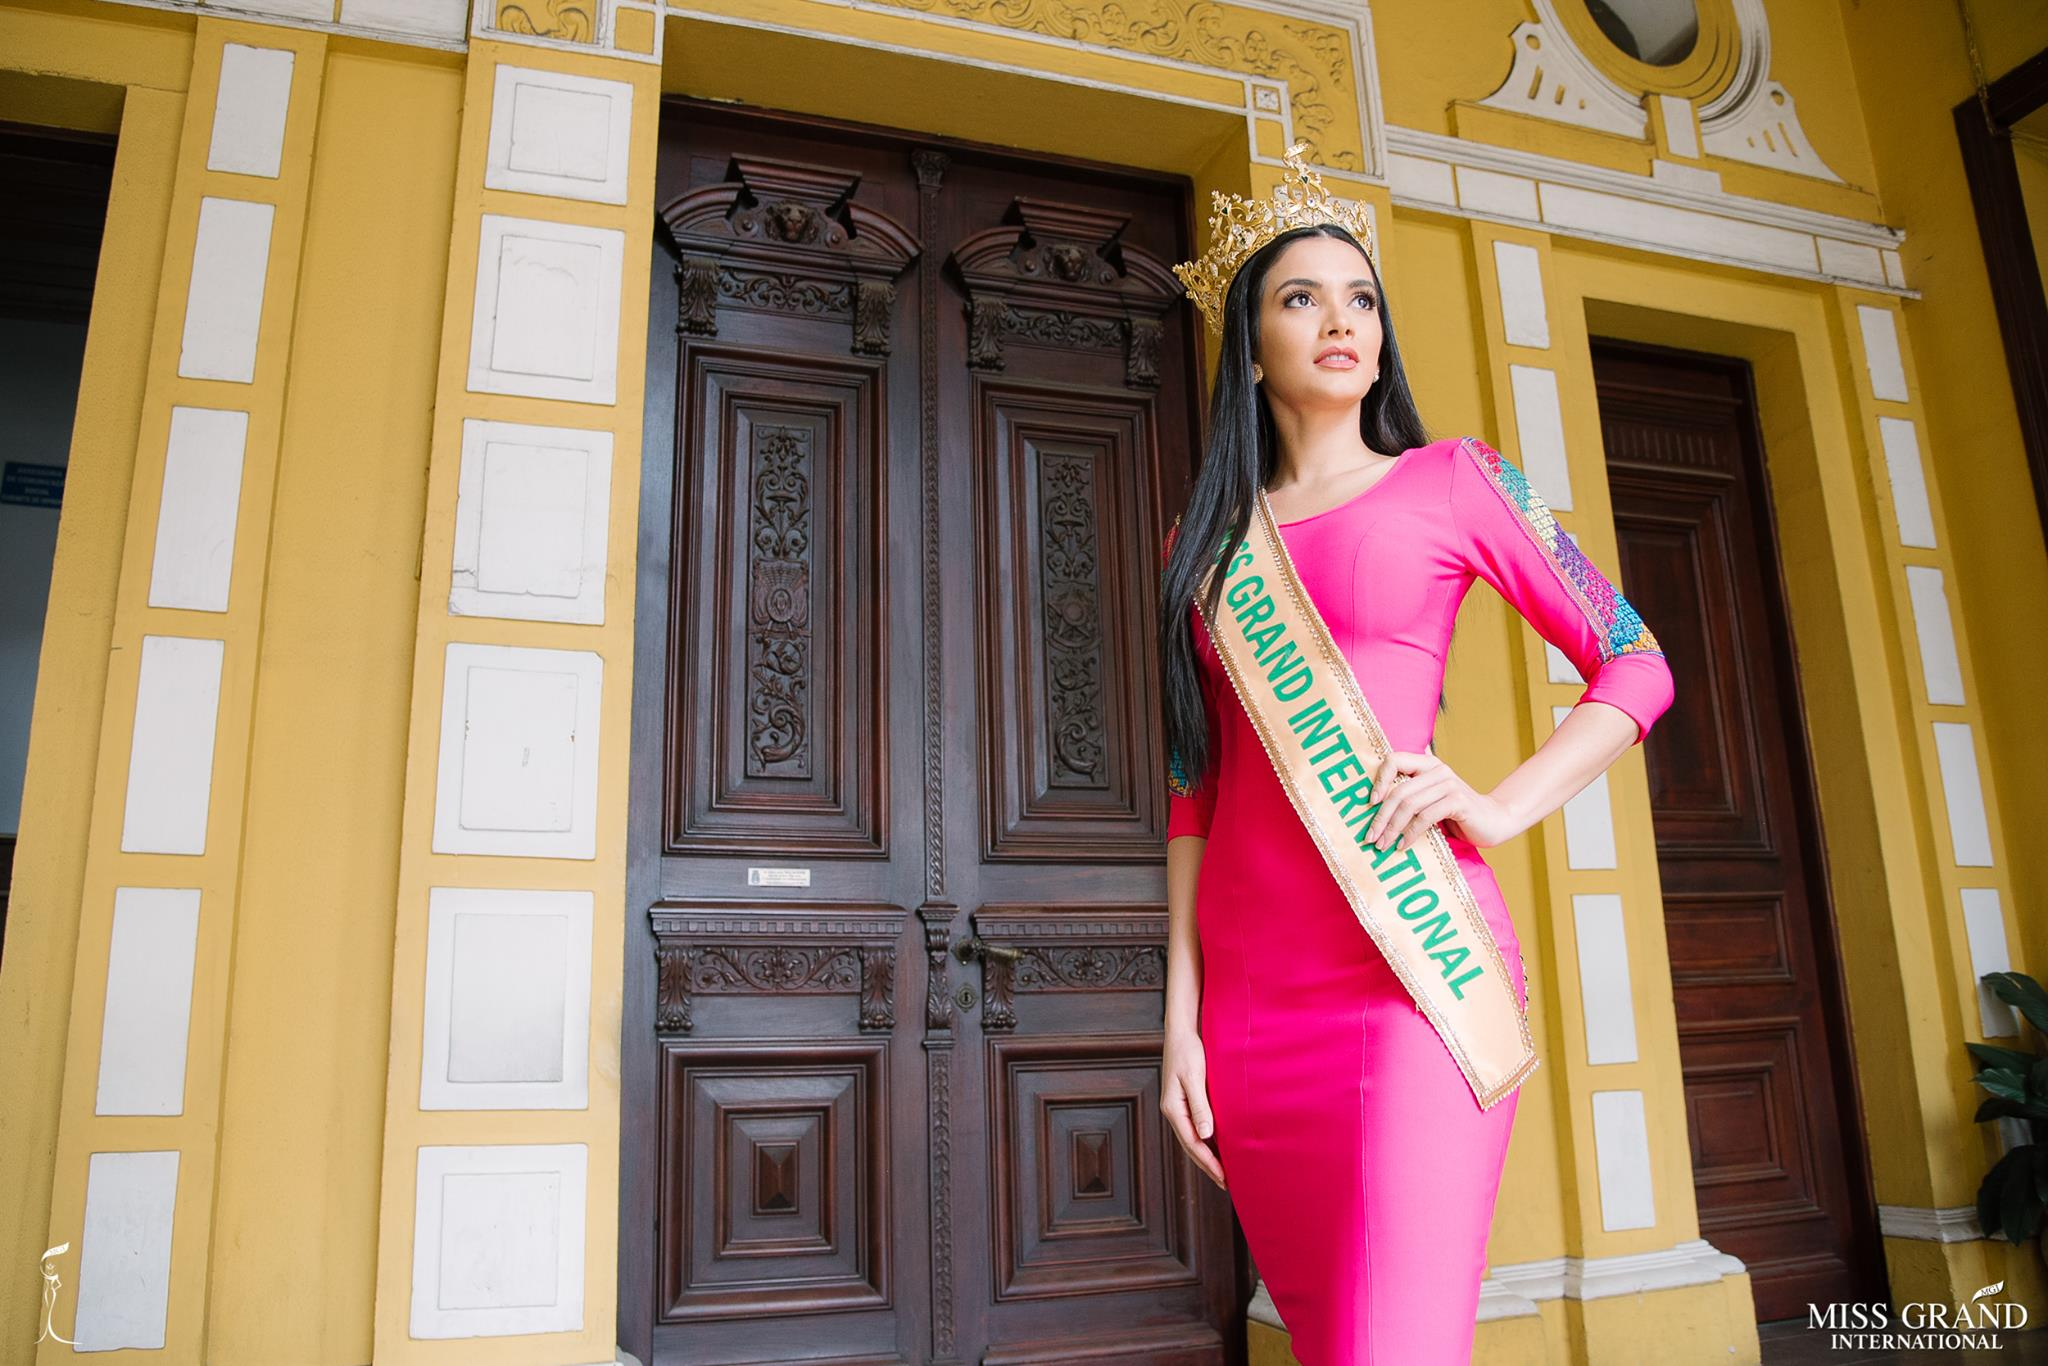 miss grand international 2018 visitando brasil para assistir a final de miss grand brasil 2019. Hu7lvsdc